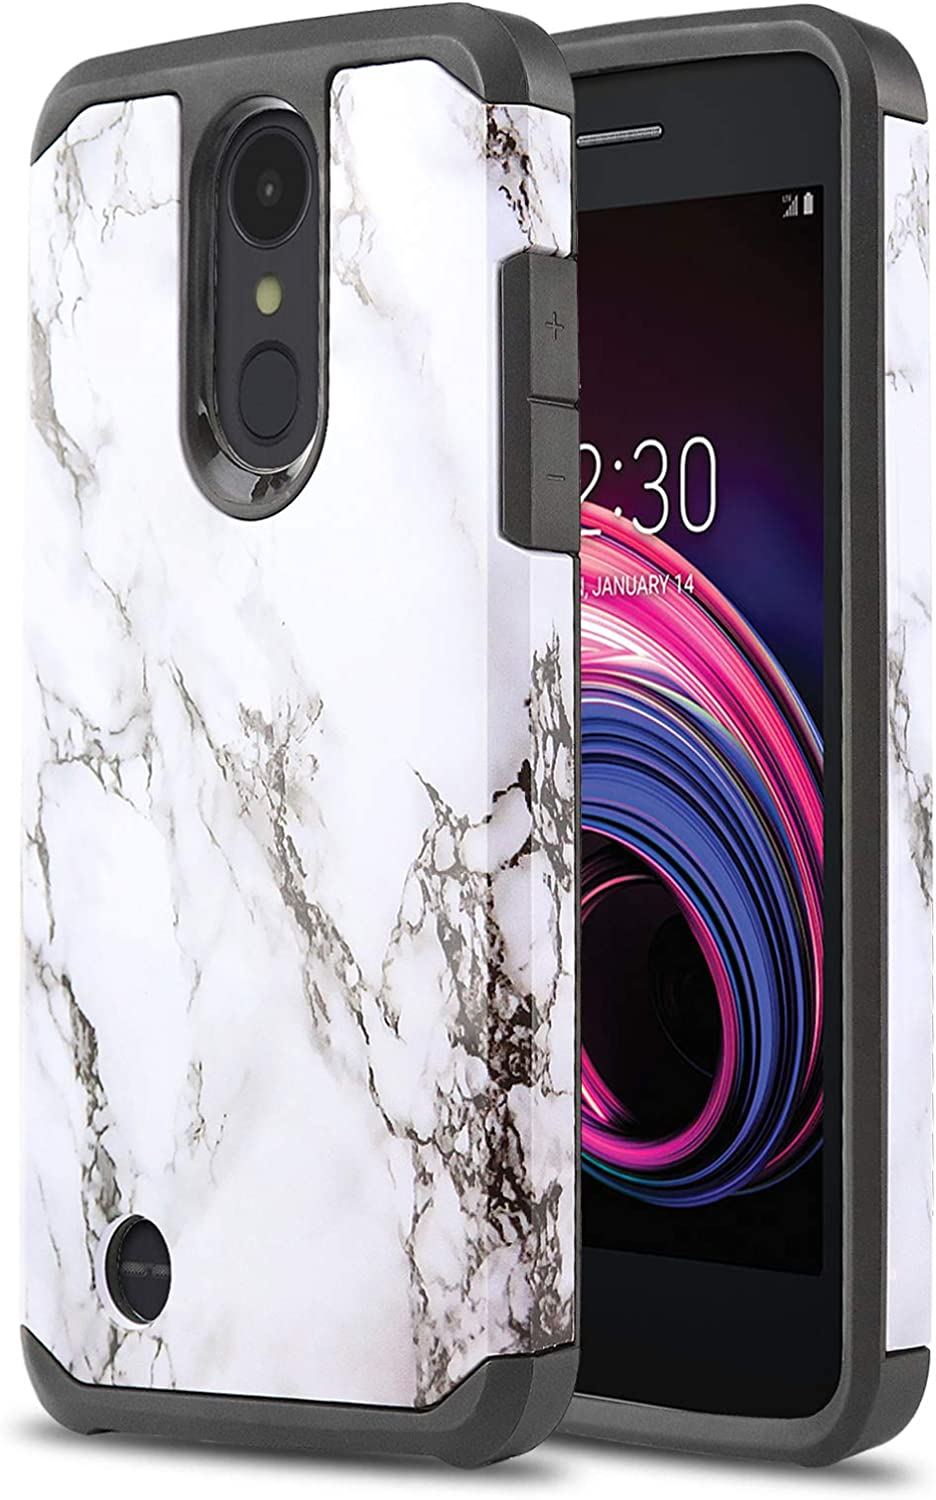 Phone Case for [LG Rebel 4 LTE (L212VL, L211BL)], [DuoTEK Series][White Marble] Shockproof Cover [Impact Resistant] for LG Rebel 4 LTE (Tracfone, Simple Mobile, Straight Talk, Total Wireless)